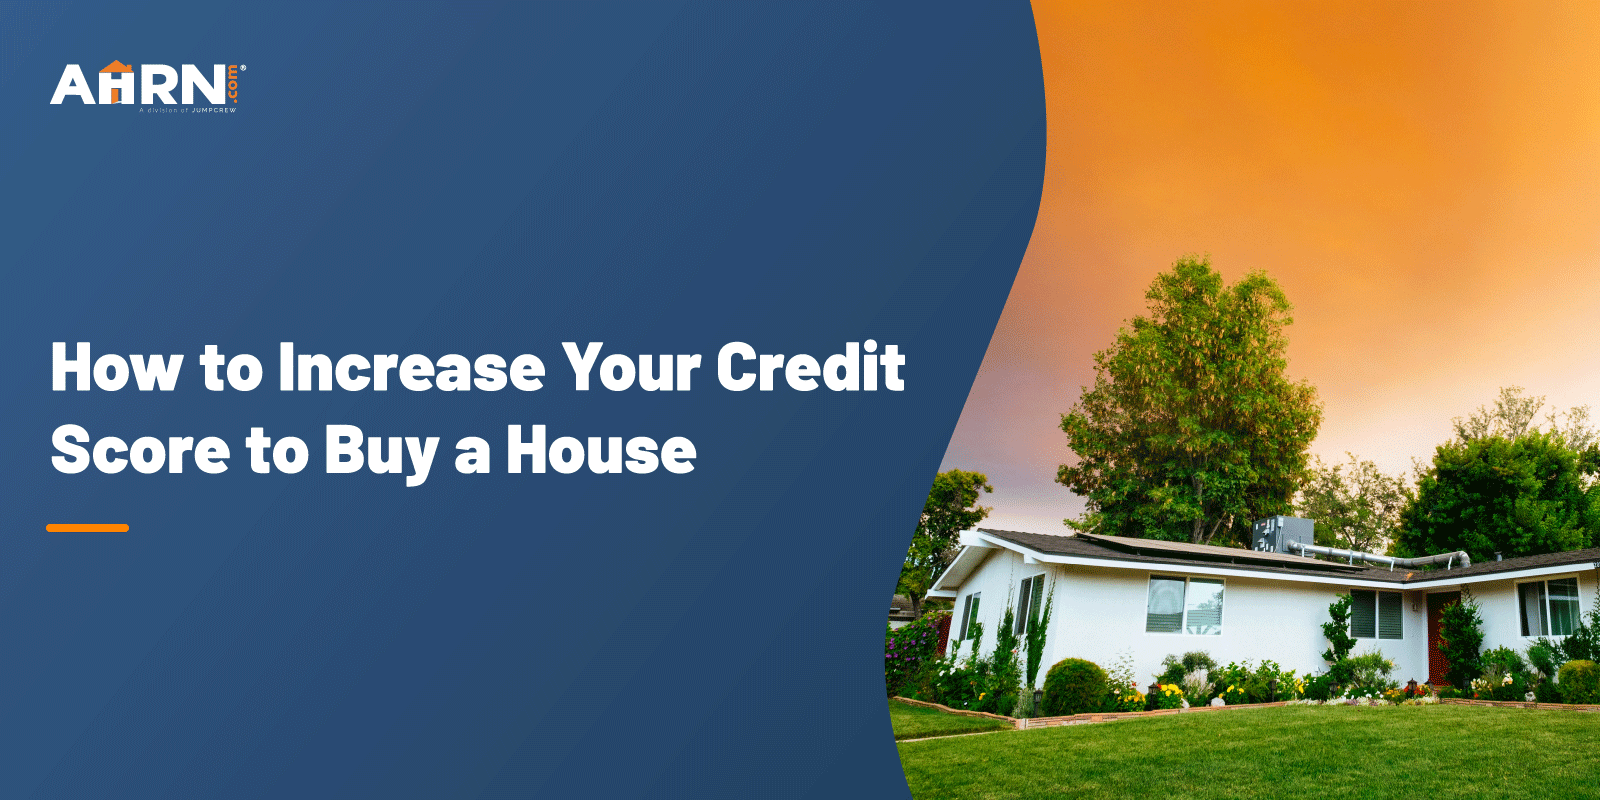 How to increase your credit score to buy a house